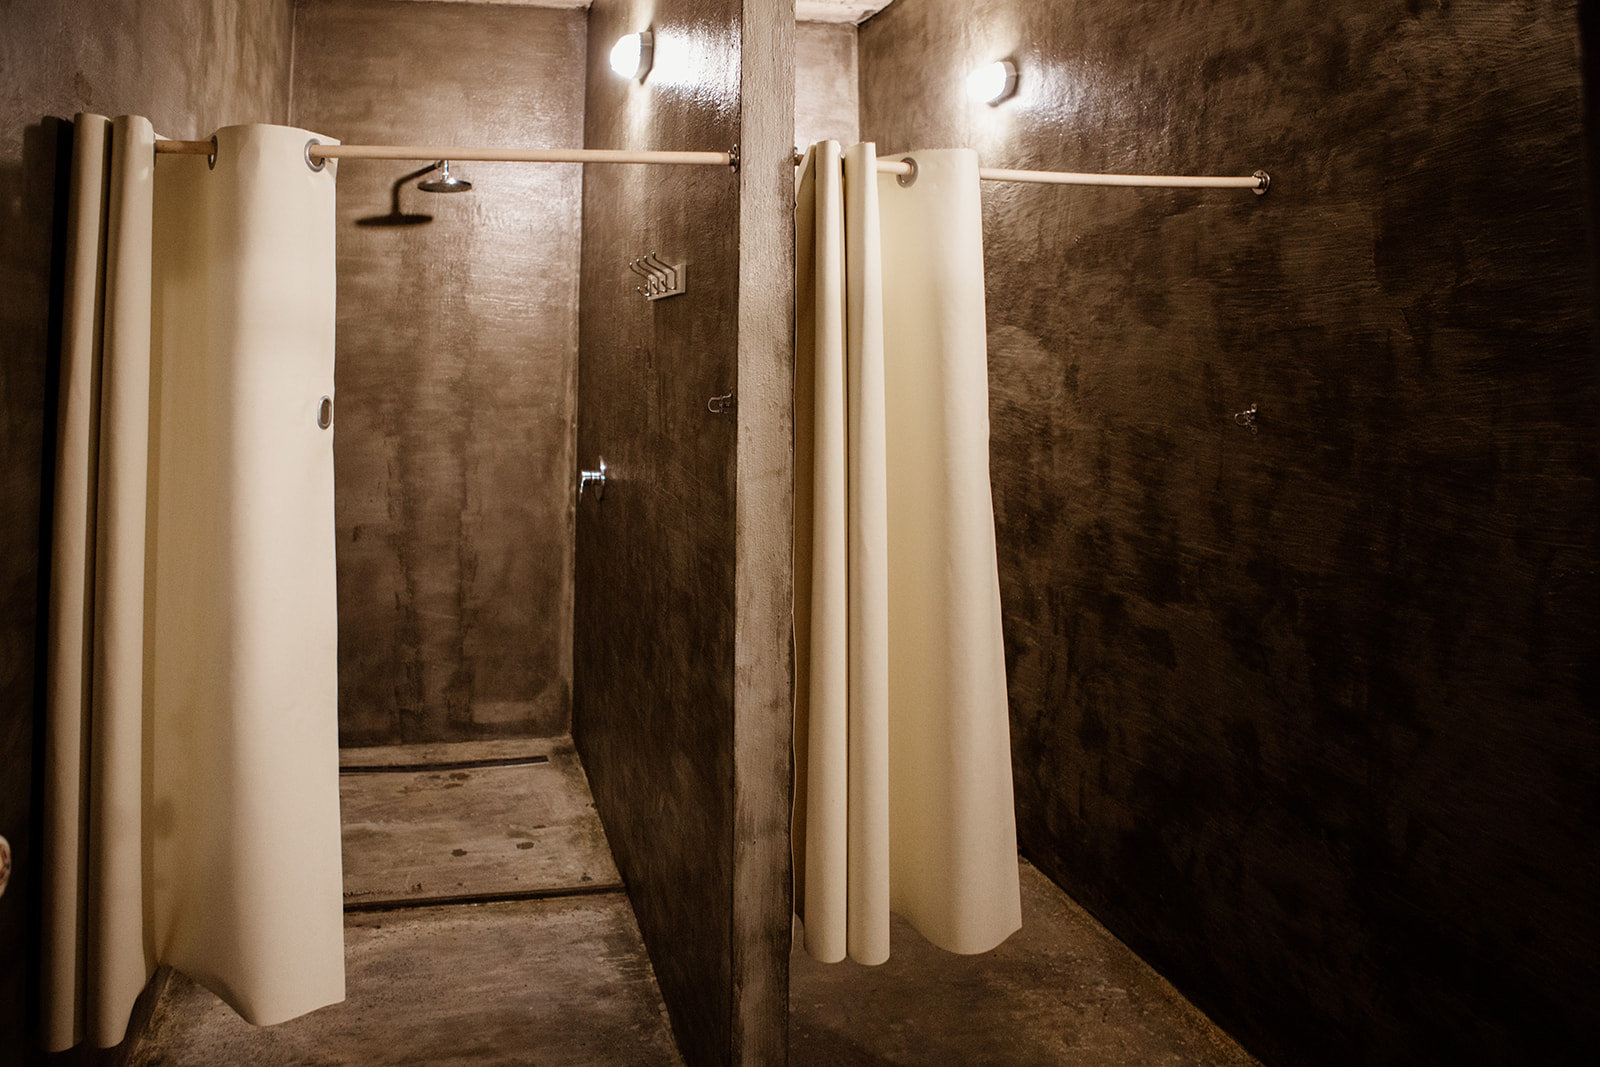 two showers polished concrete grey two white shower curtains - hiking yoga holiday montenegro